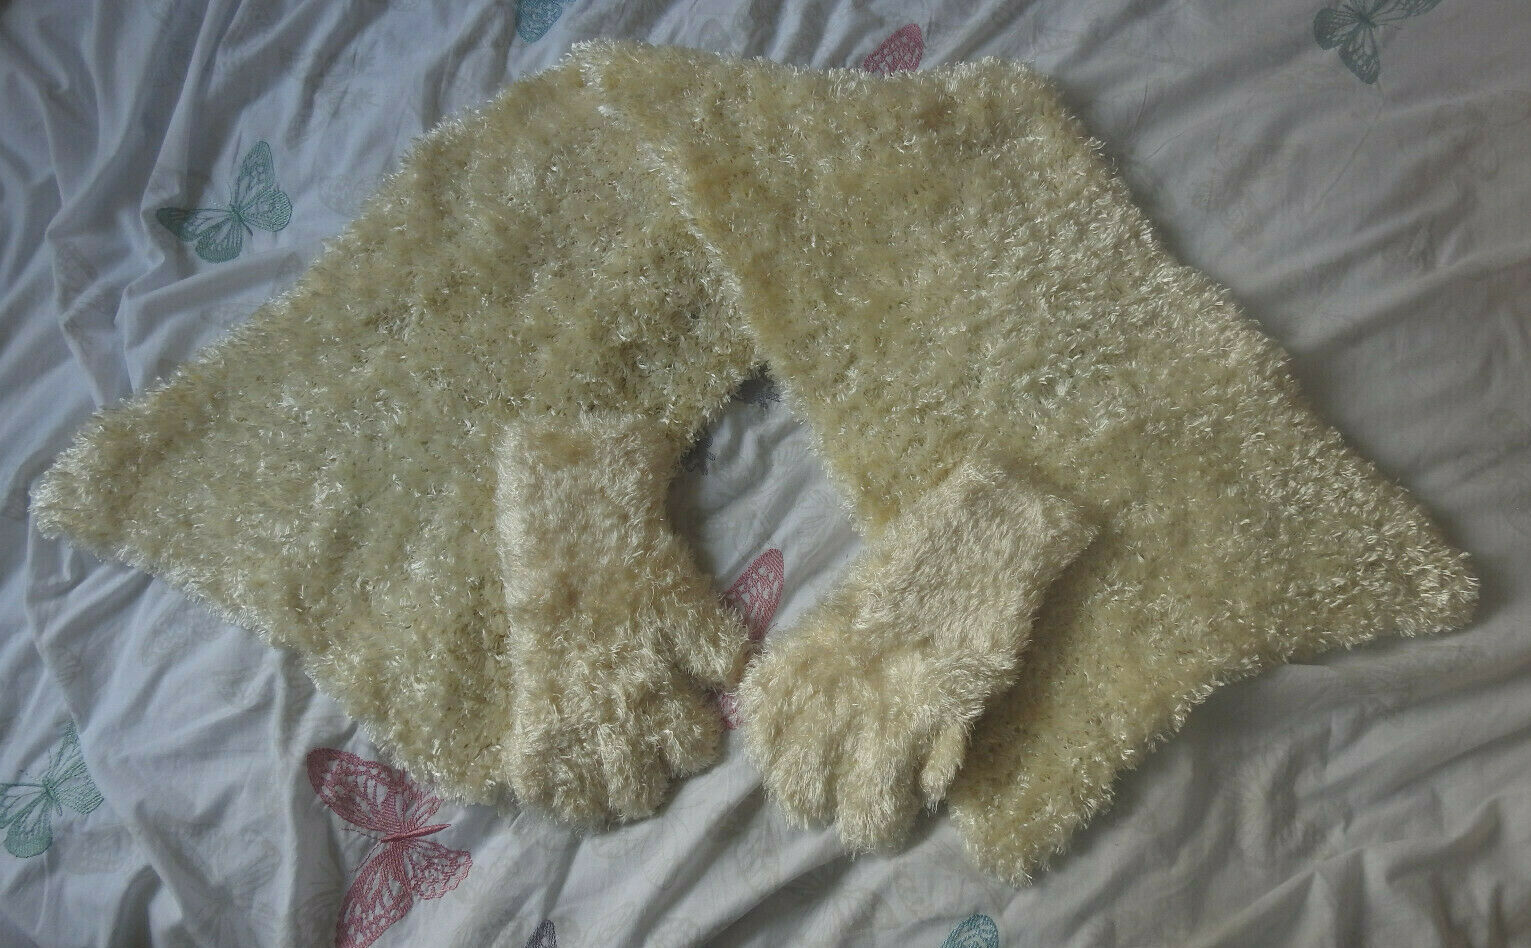 Women's Gloves & Scarf Set - Soft - Knitted - Ivory / Cream - One Size